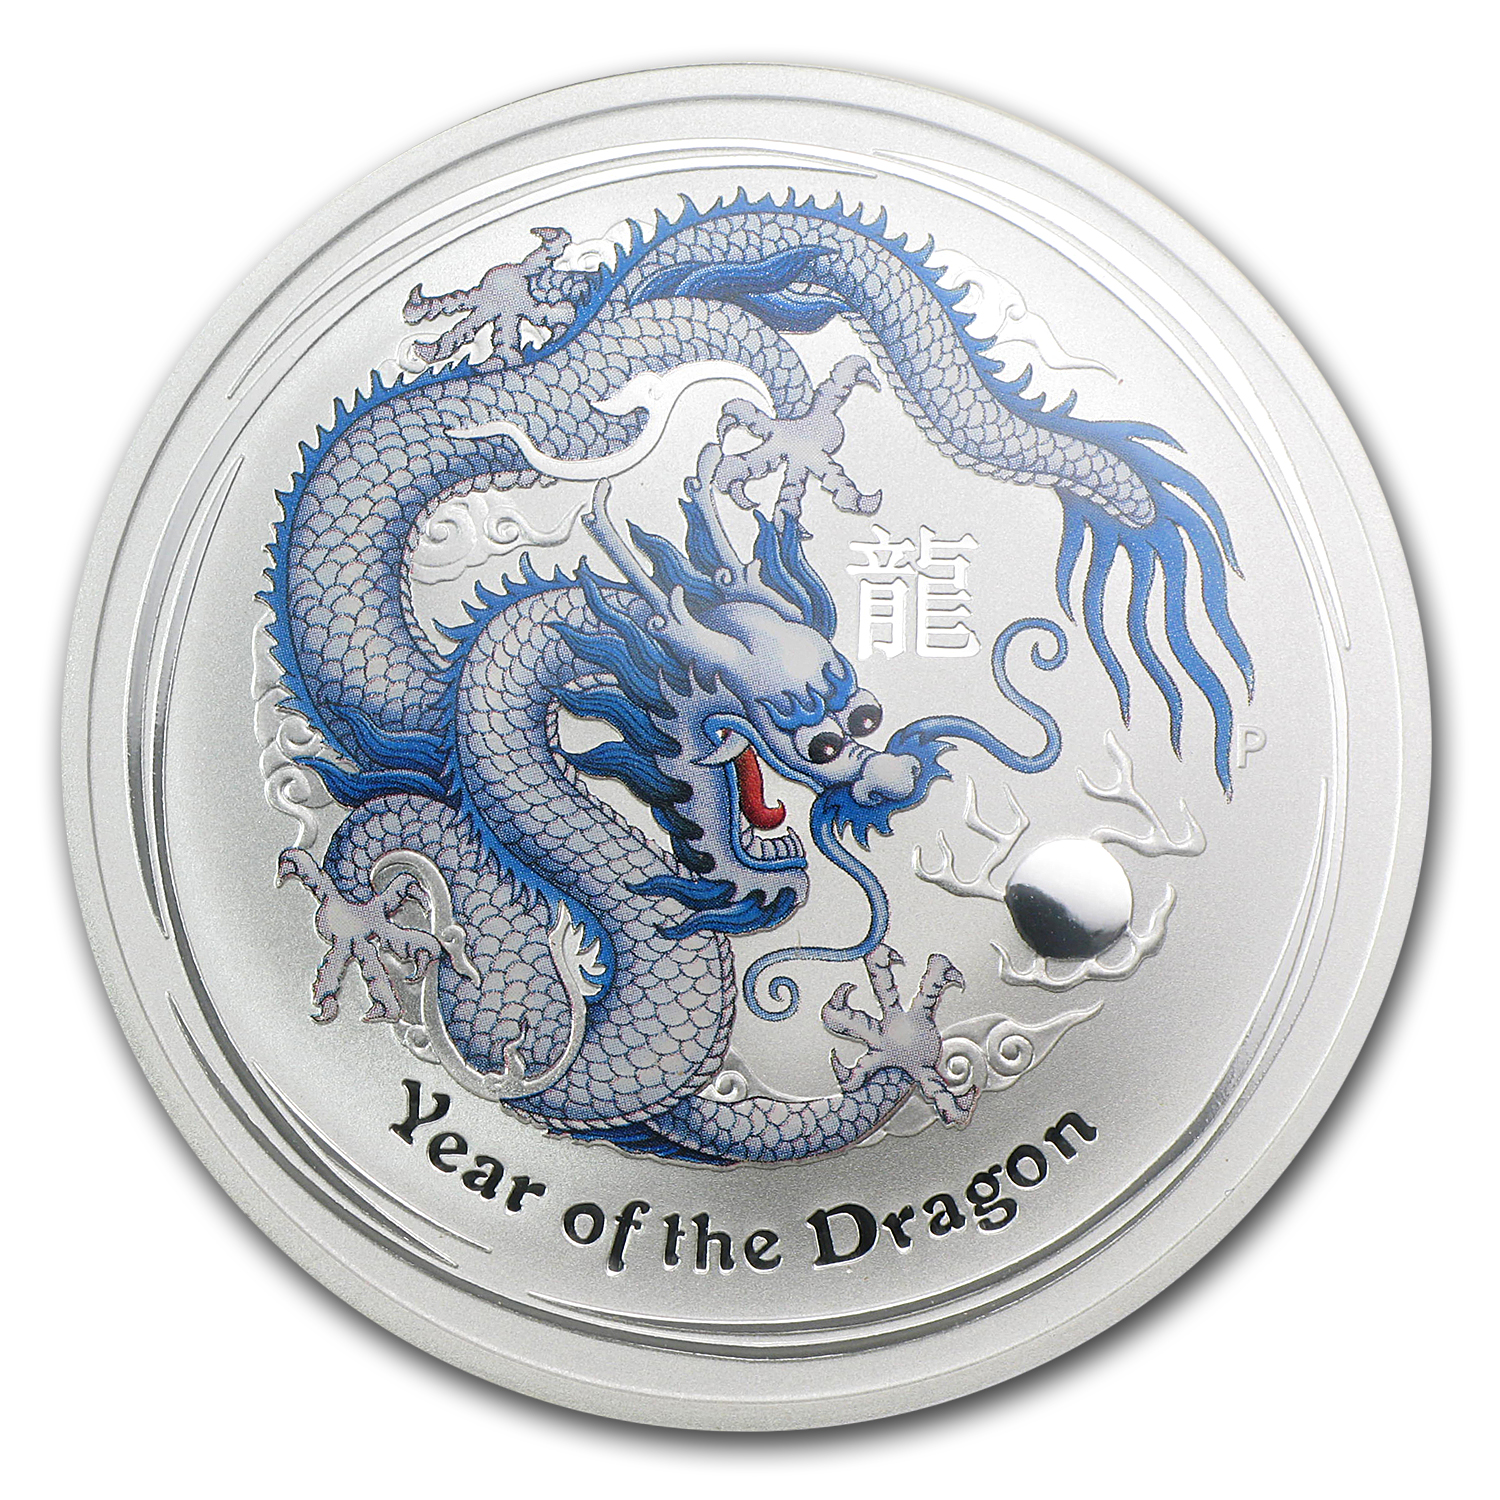 2012 1 oz Silver White Dragon (ANA Coin Show Special) NGC MS-70